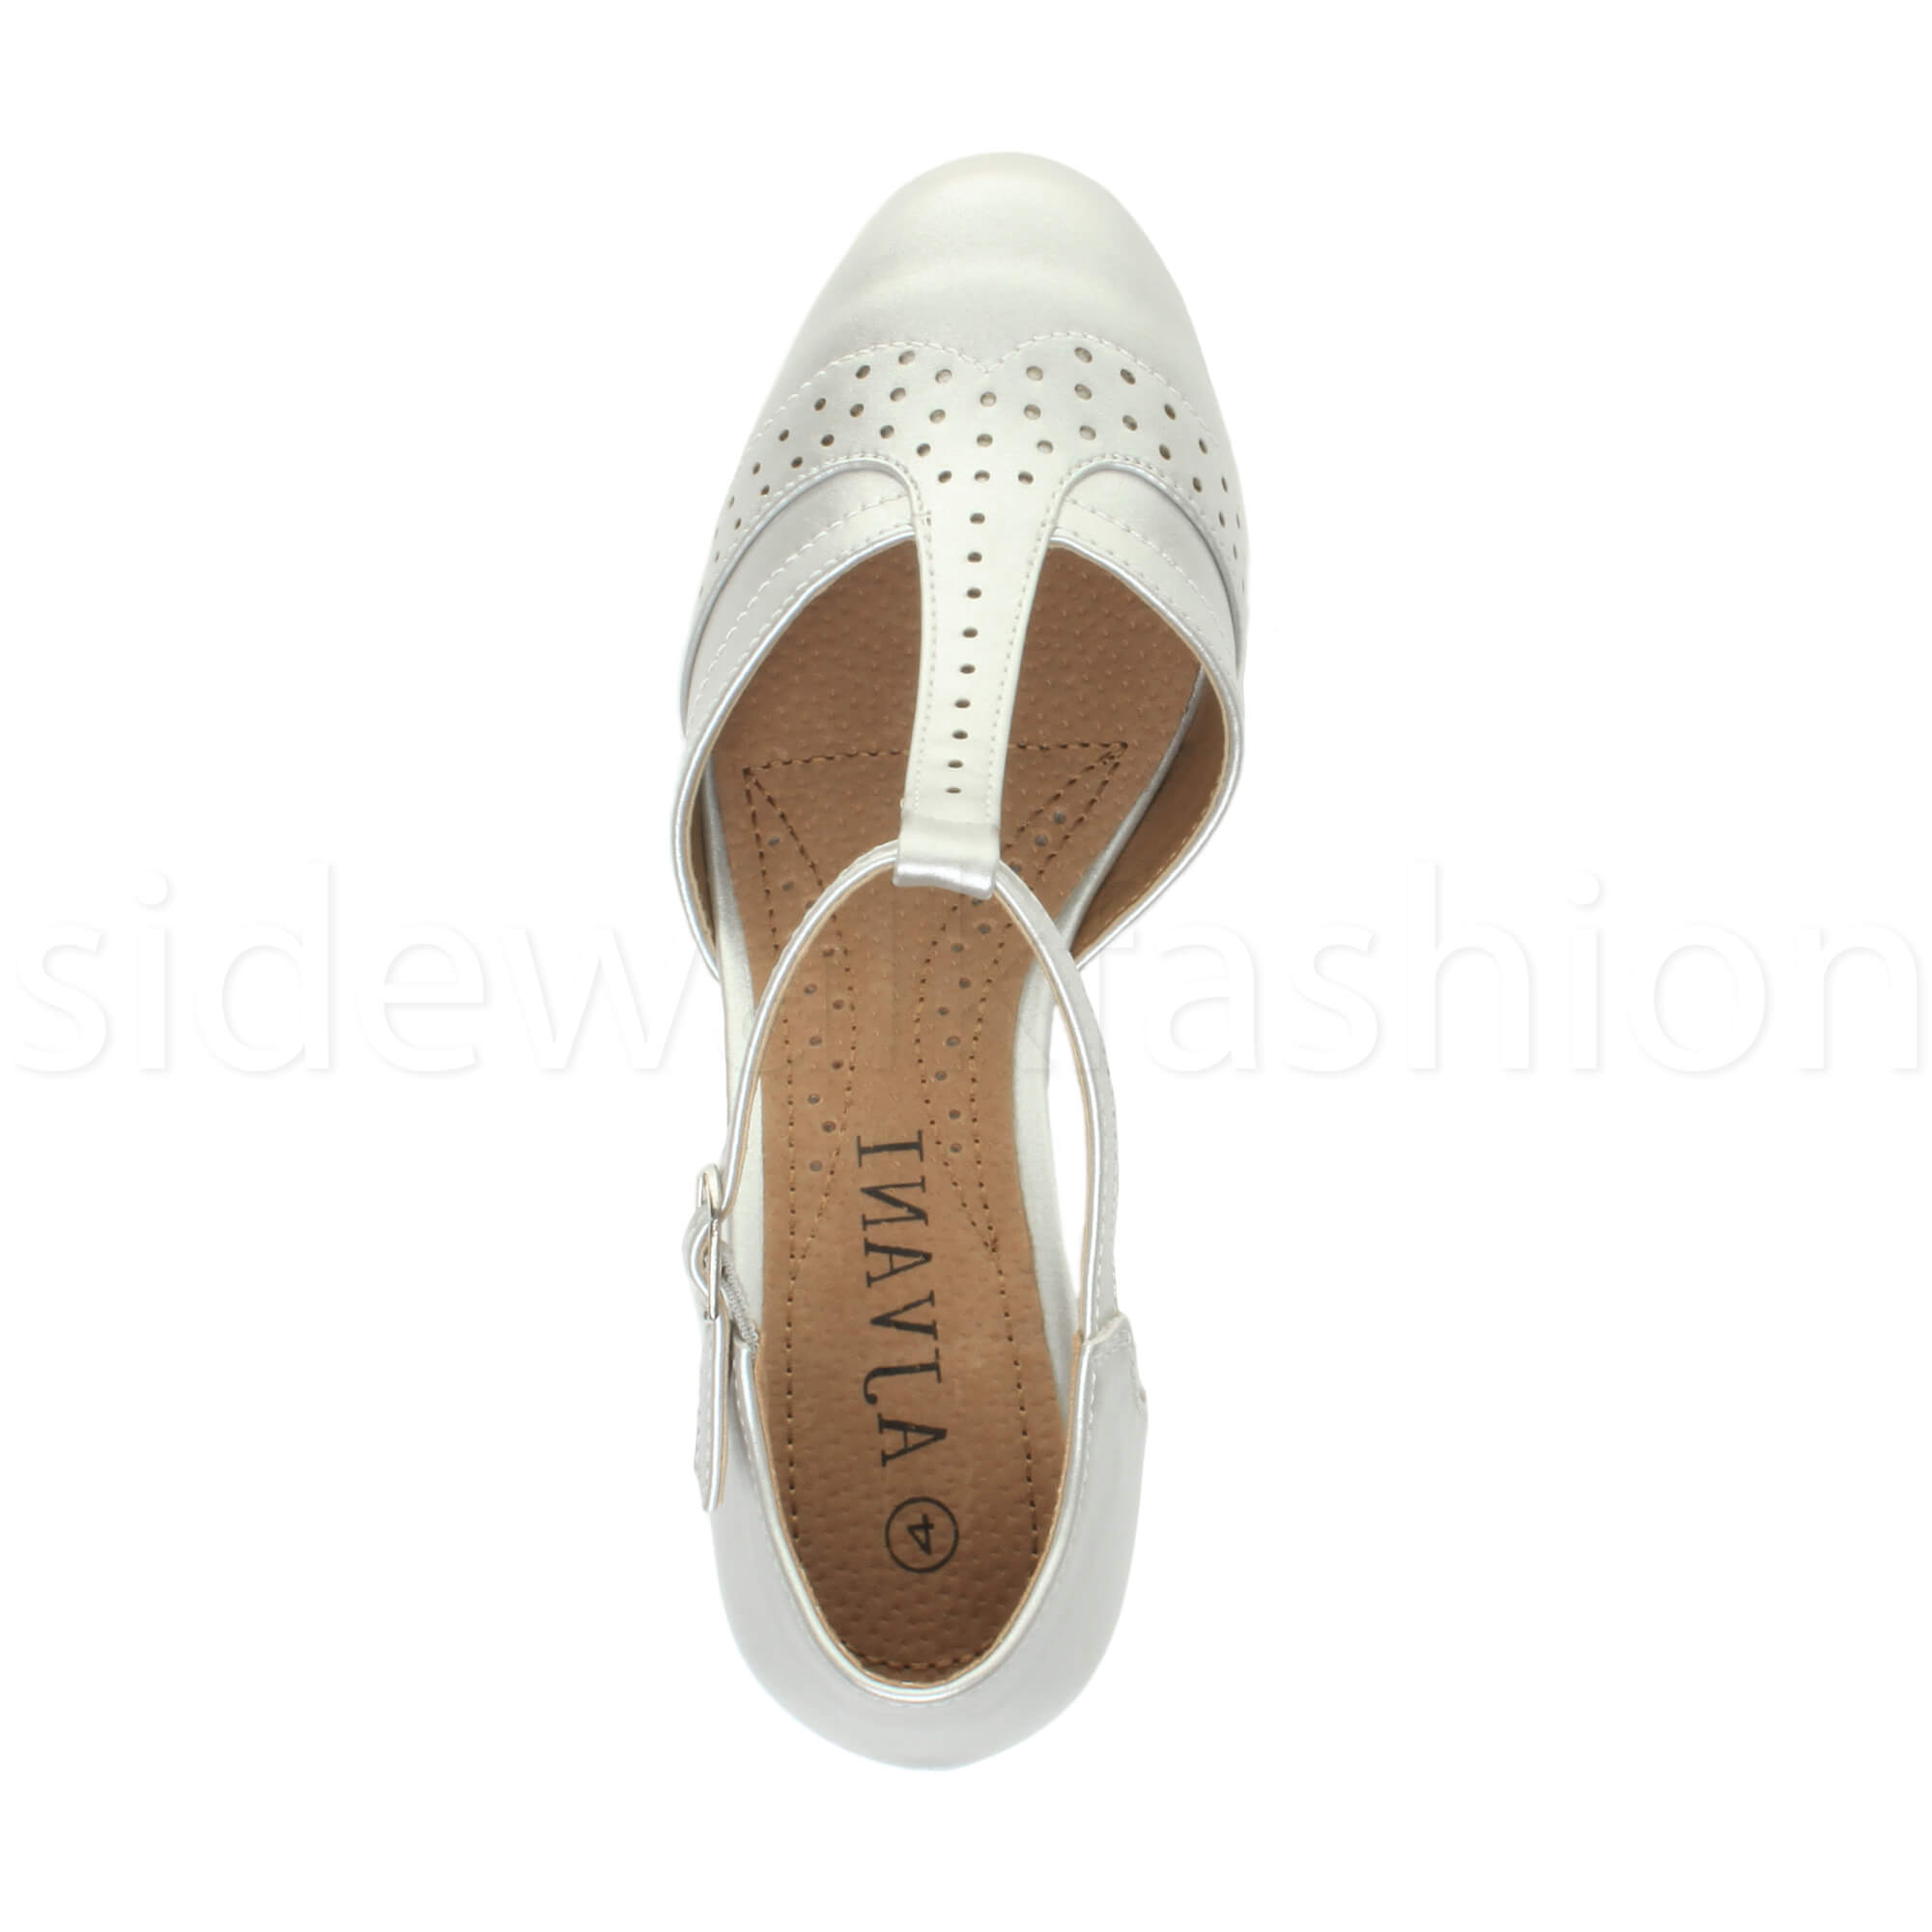 Womens-ladies-block-low-mid-heel-smart-work-Mary-Jane-T-bar-brogue-court-shoes thumbnail 69